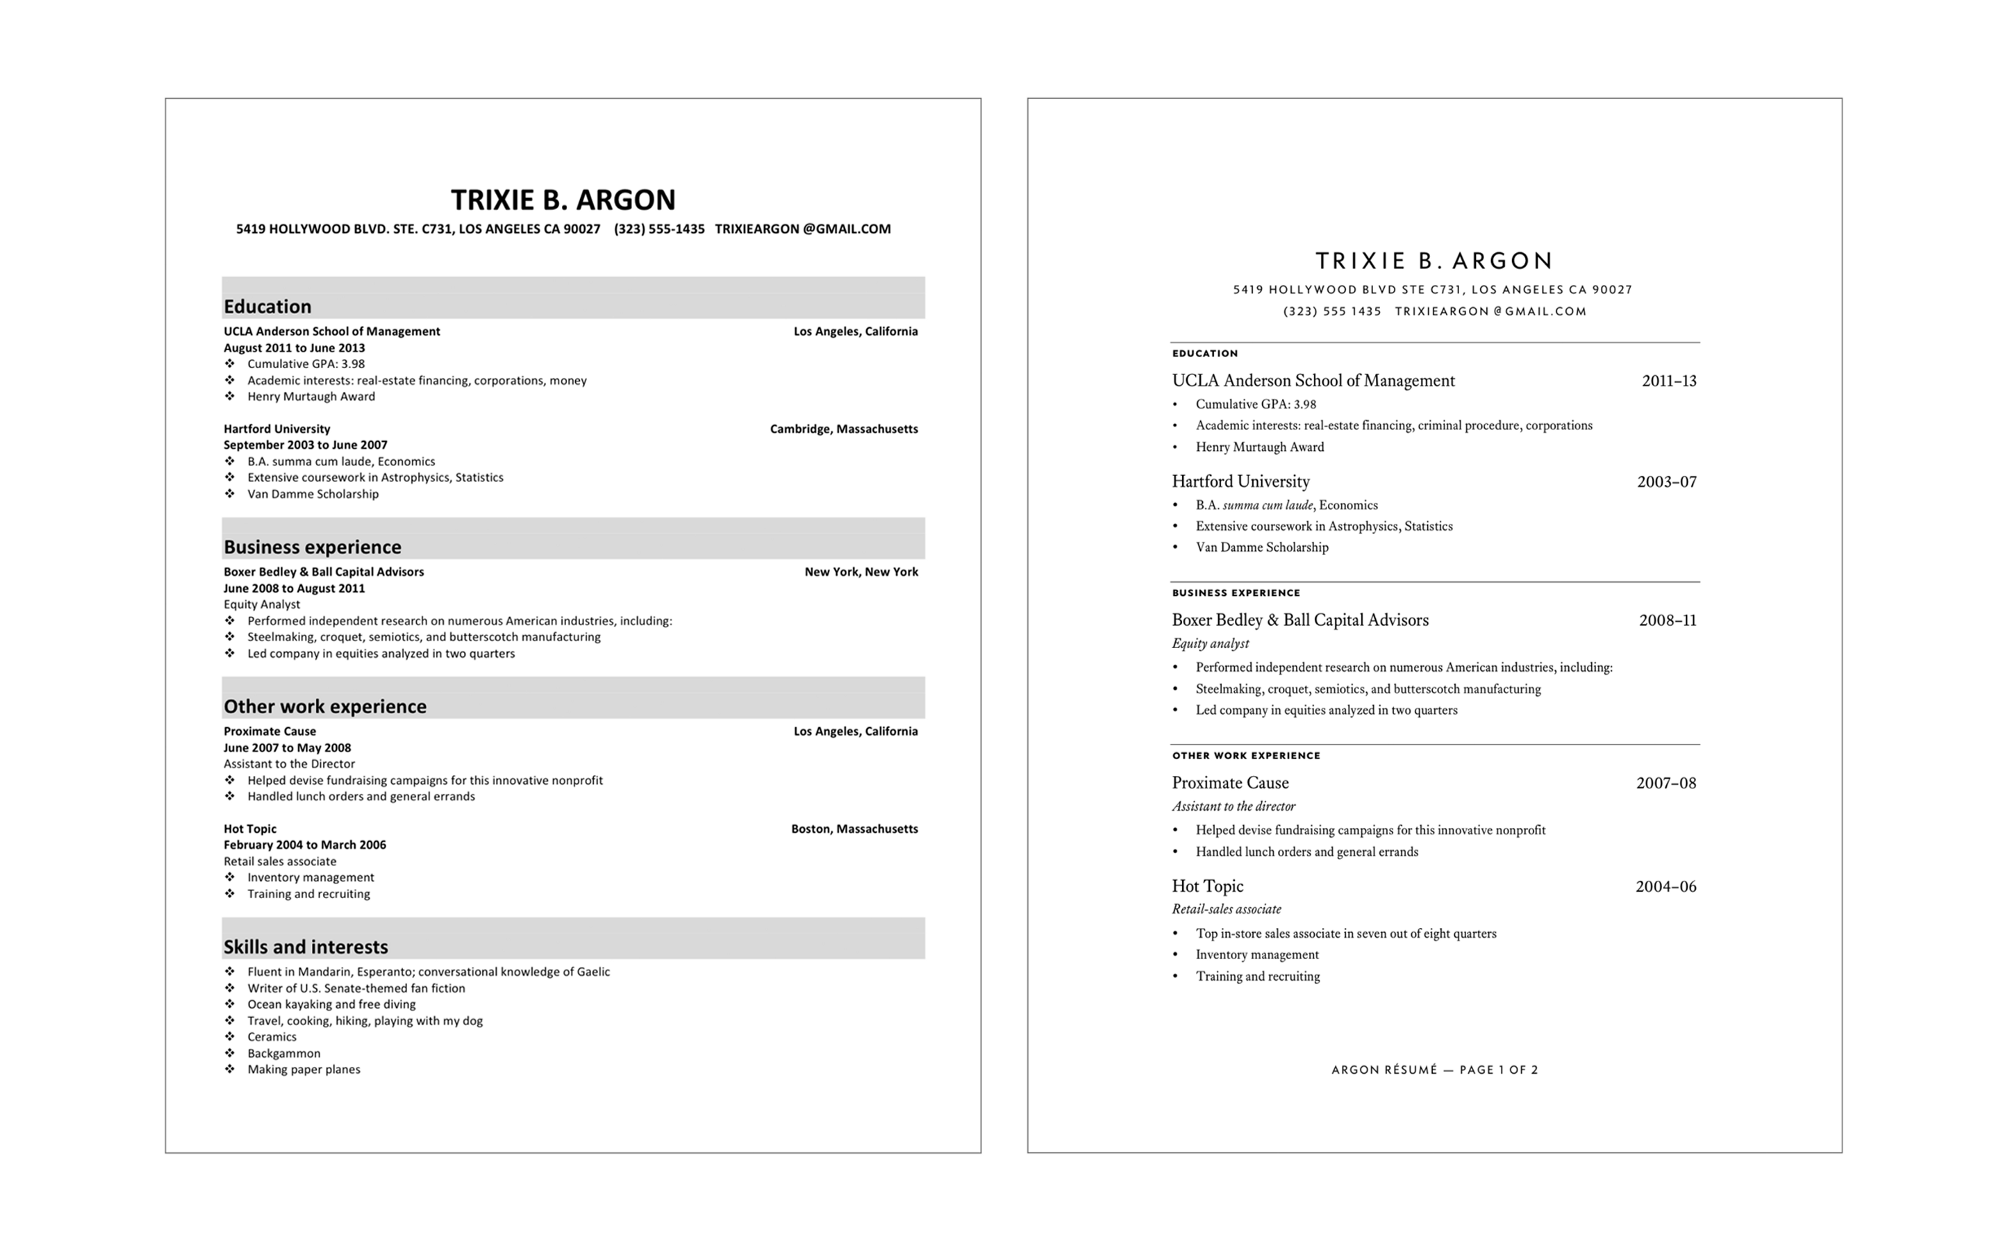 The Perfect Resume – Ryan Joseph Hill – Medium